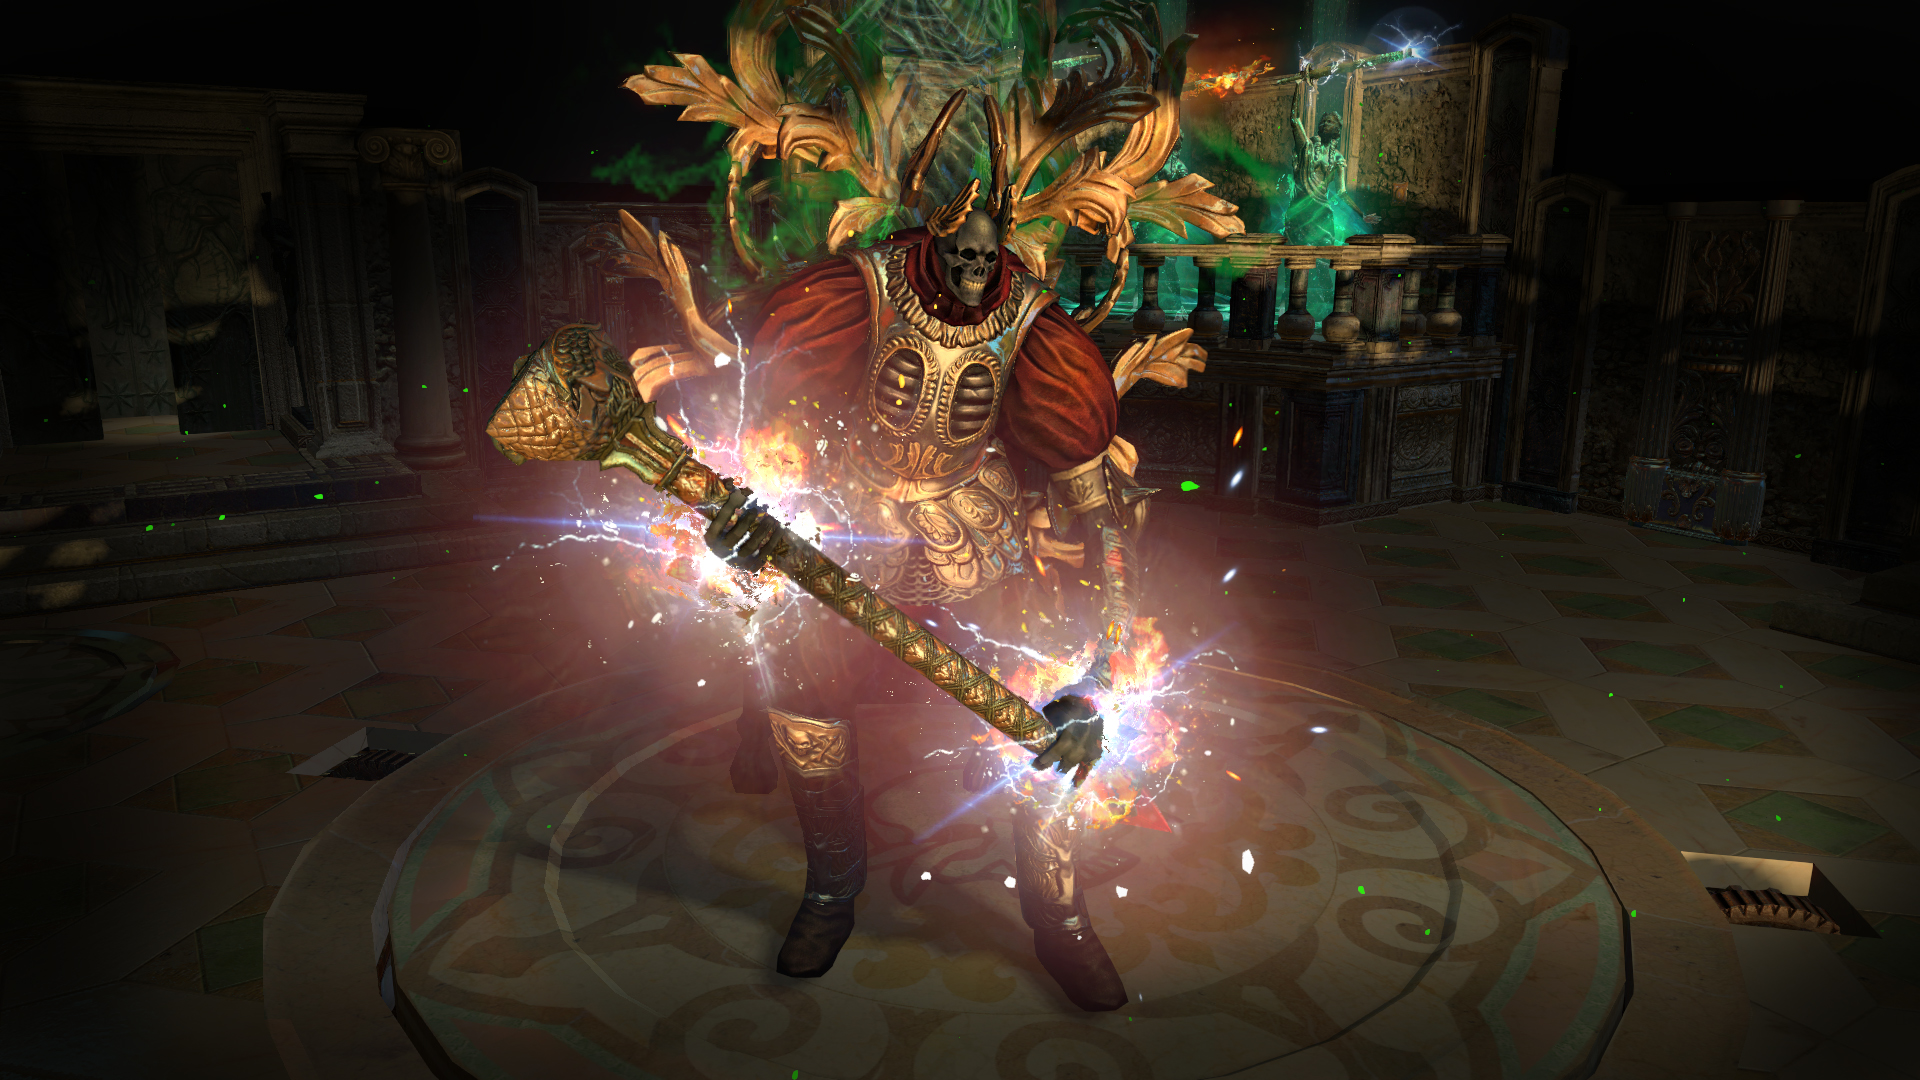 Path of Exile - What are the best co-op games on Steam? - Slant